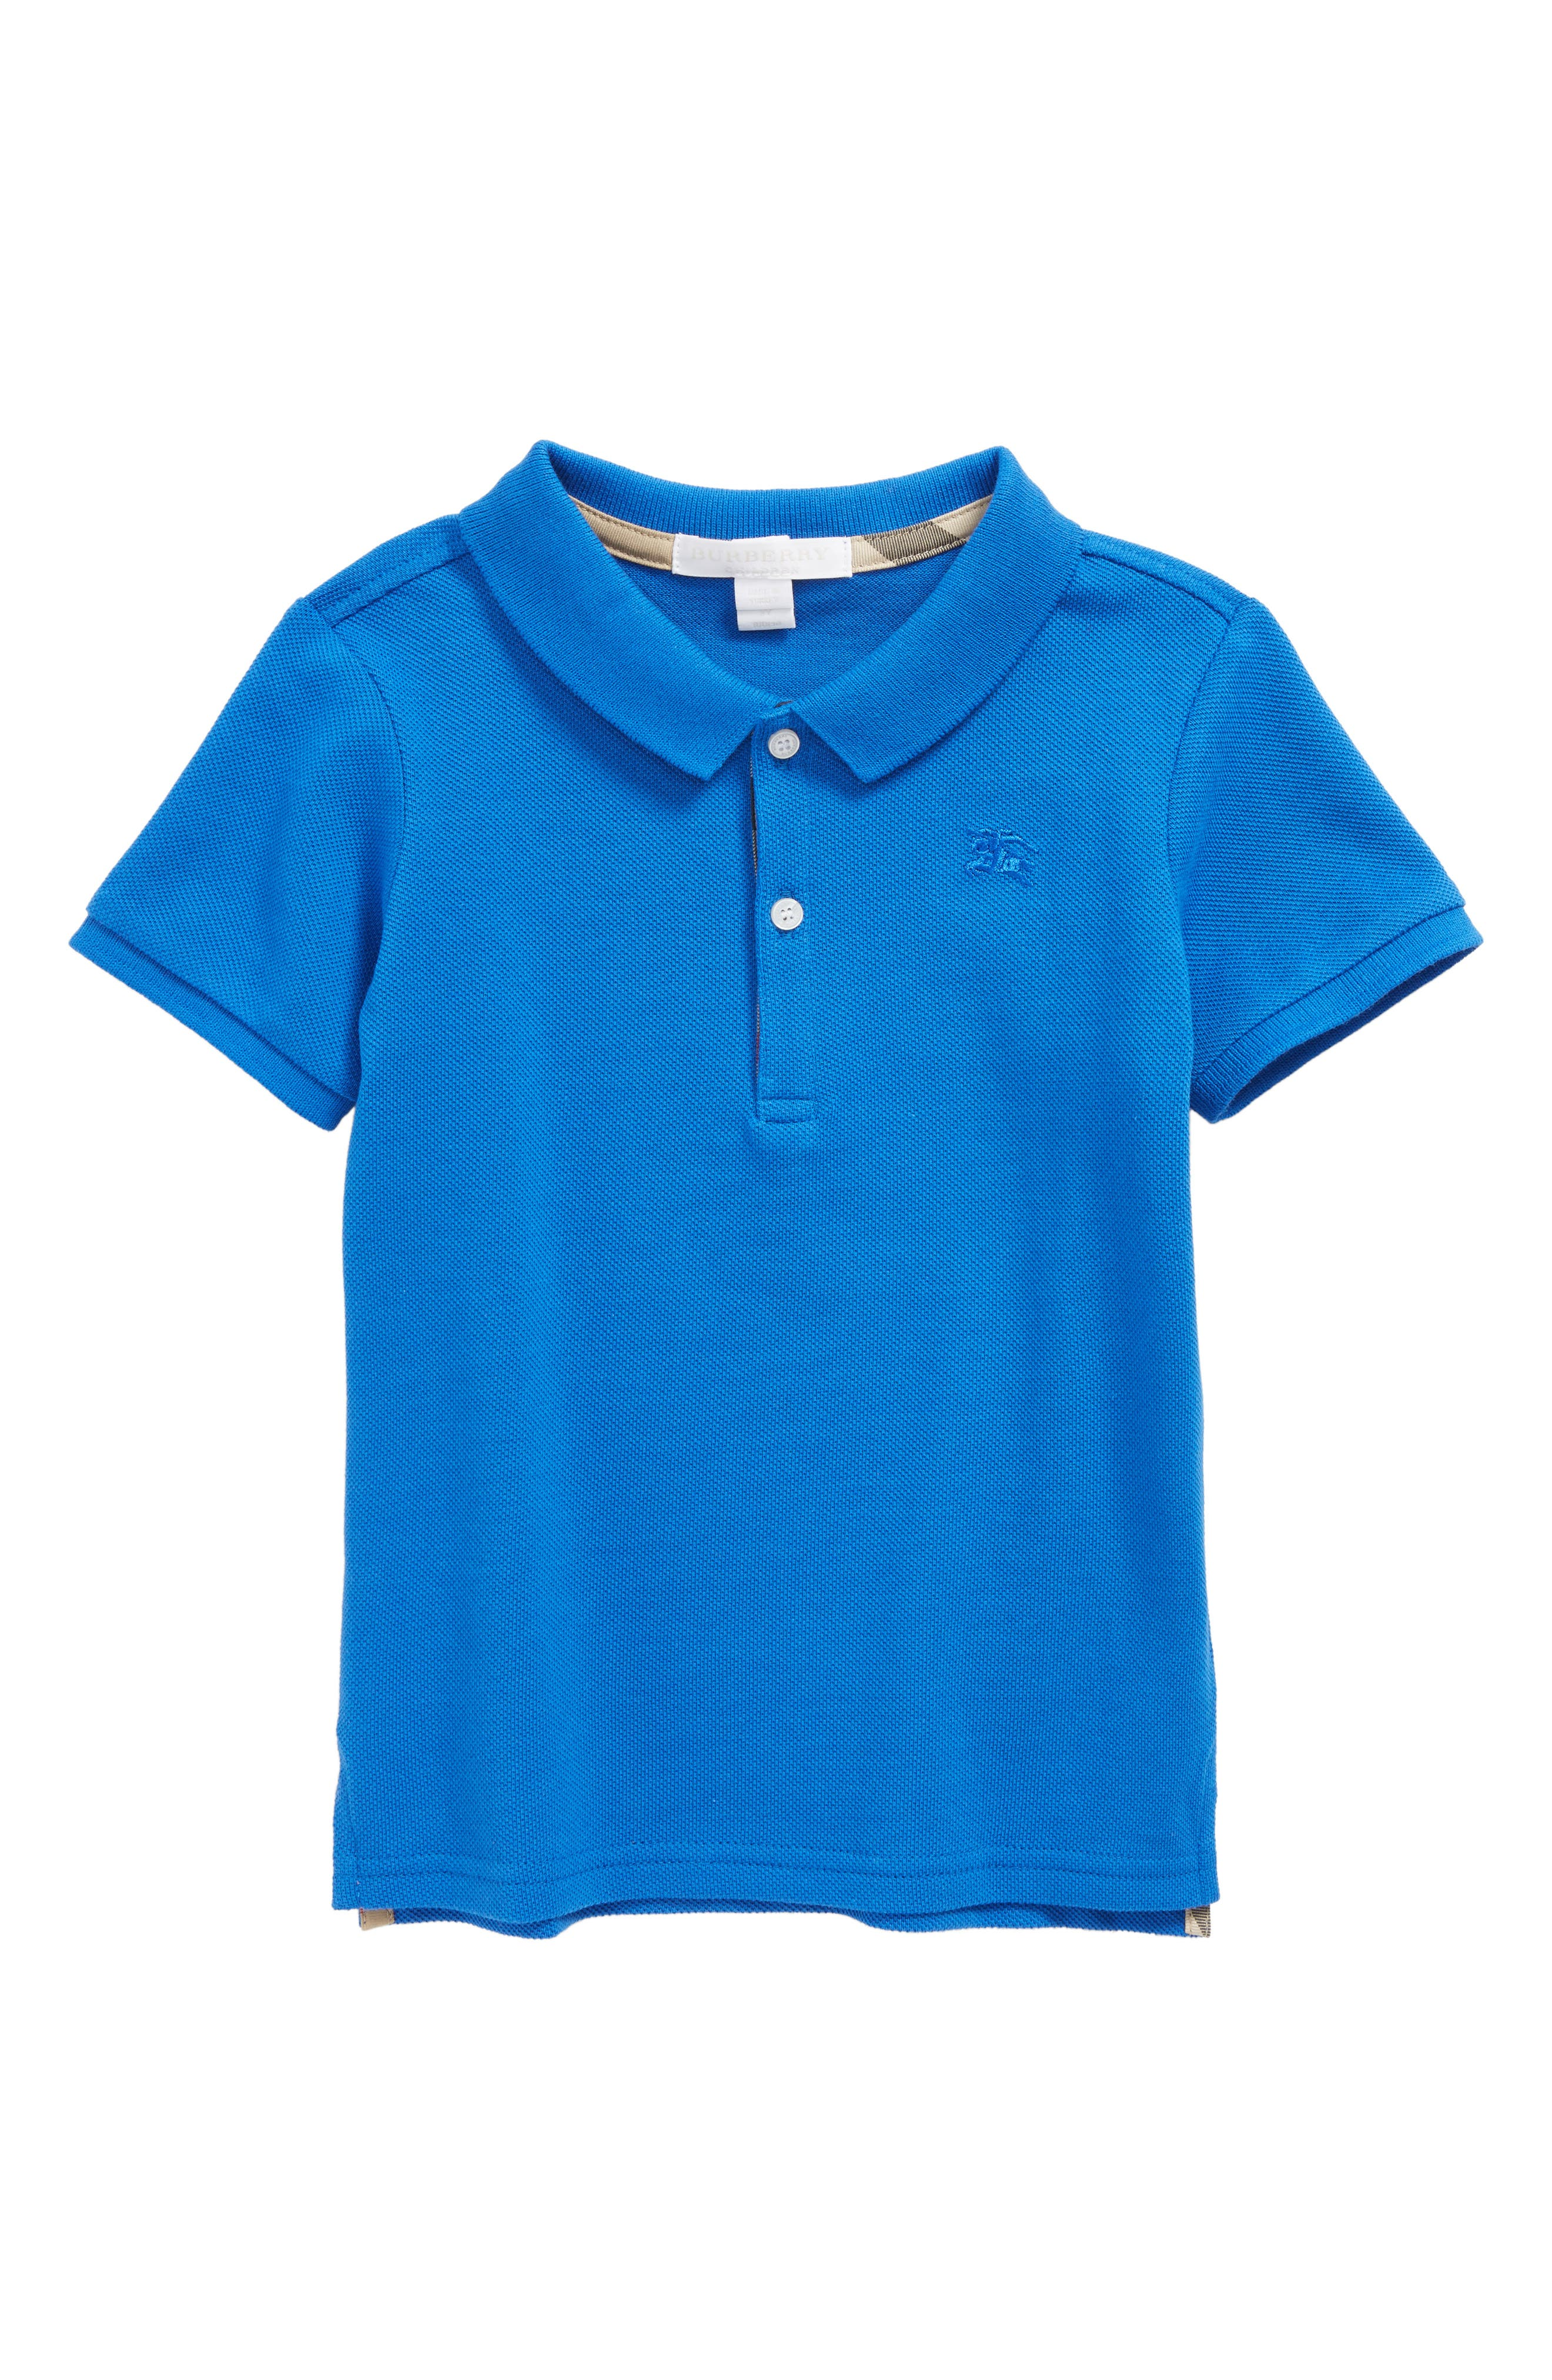 Palmer Piqué Polo,                             Main thumbnail 1, color,                             432